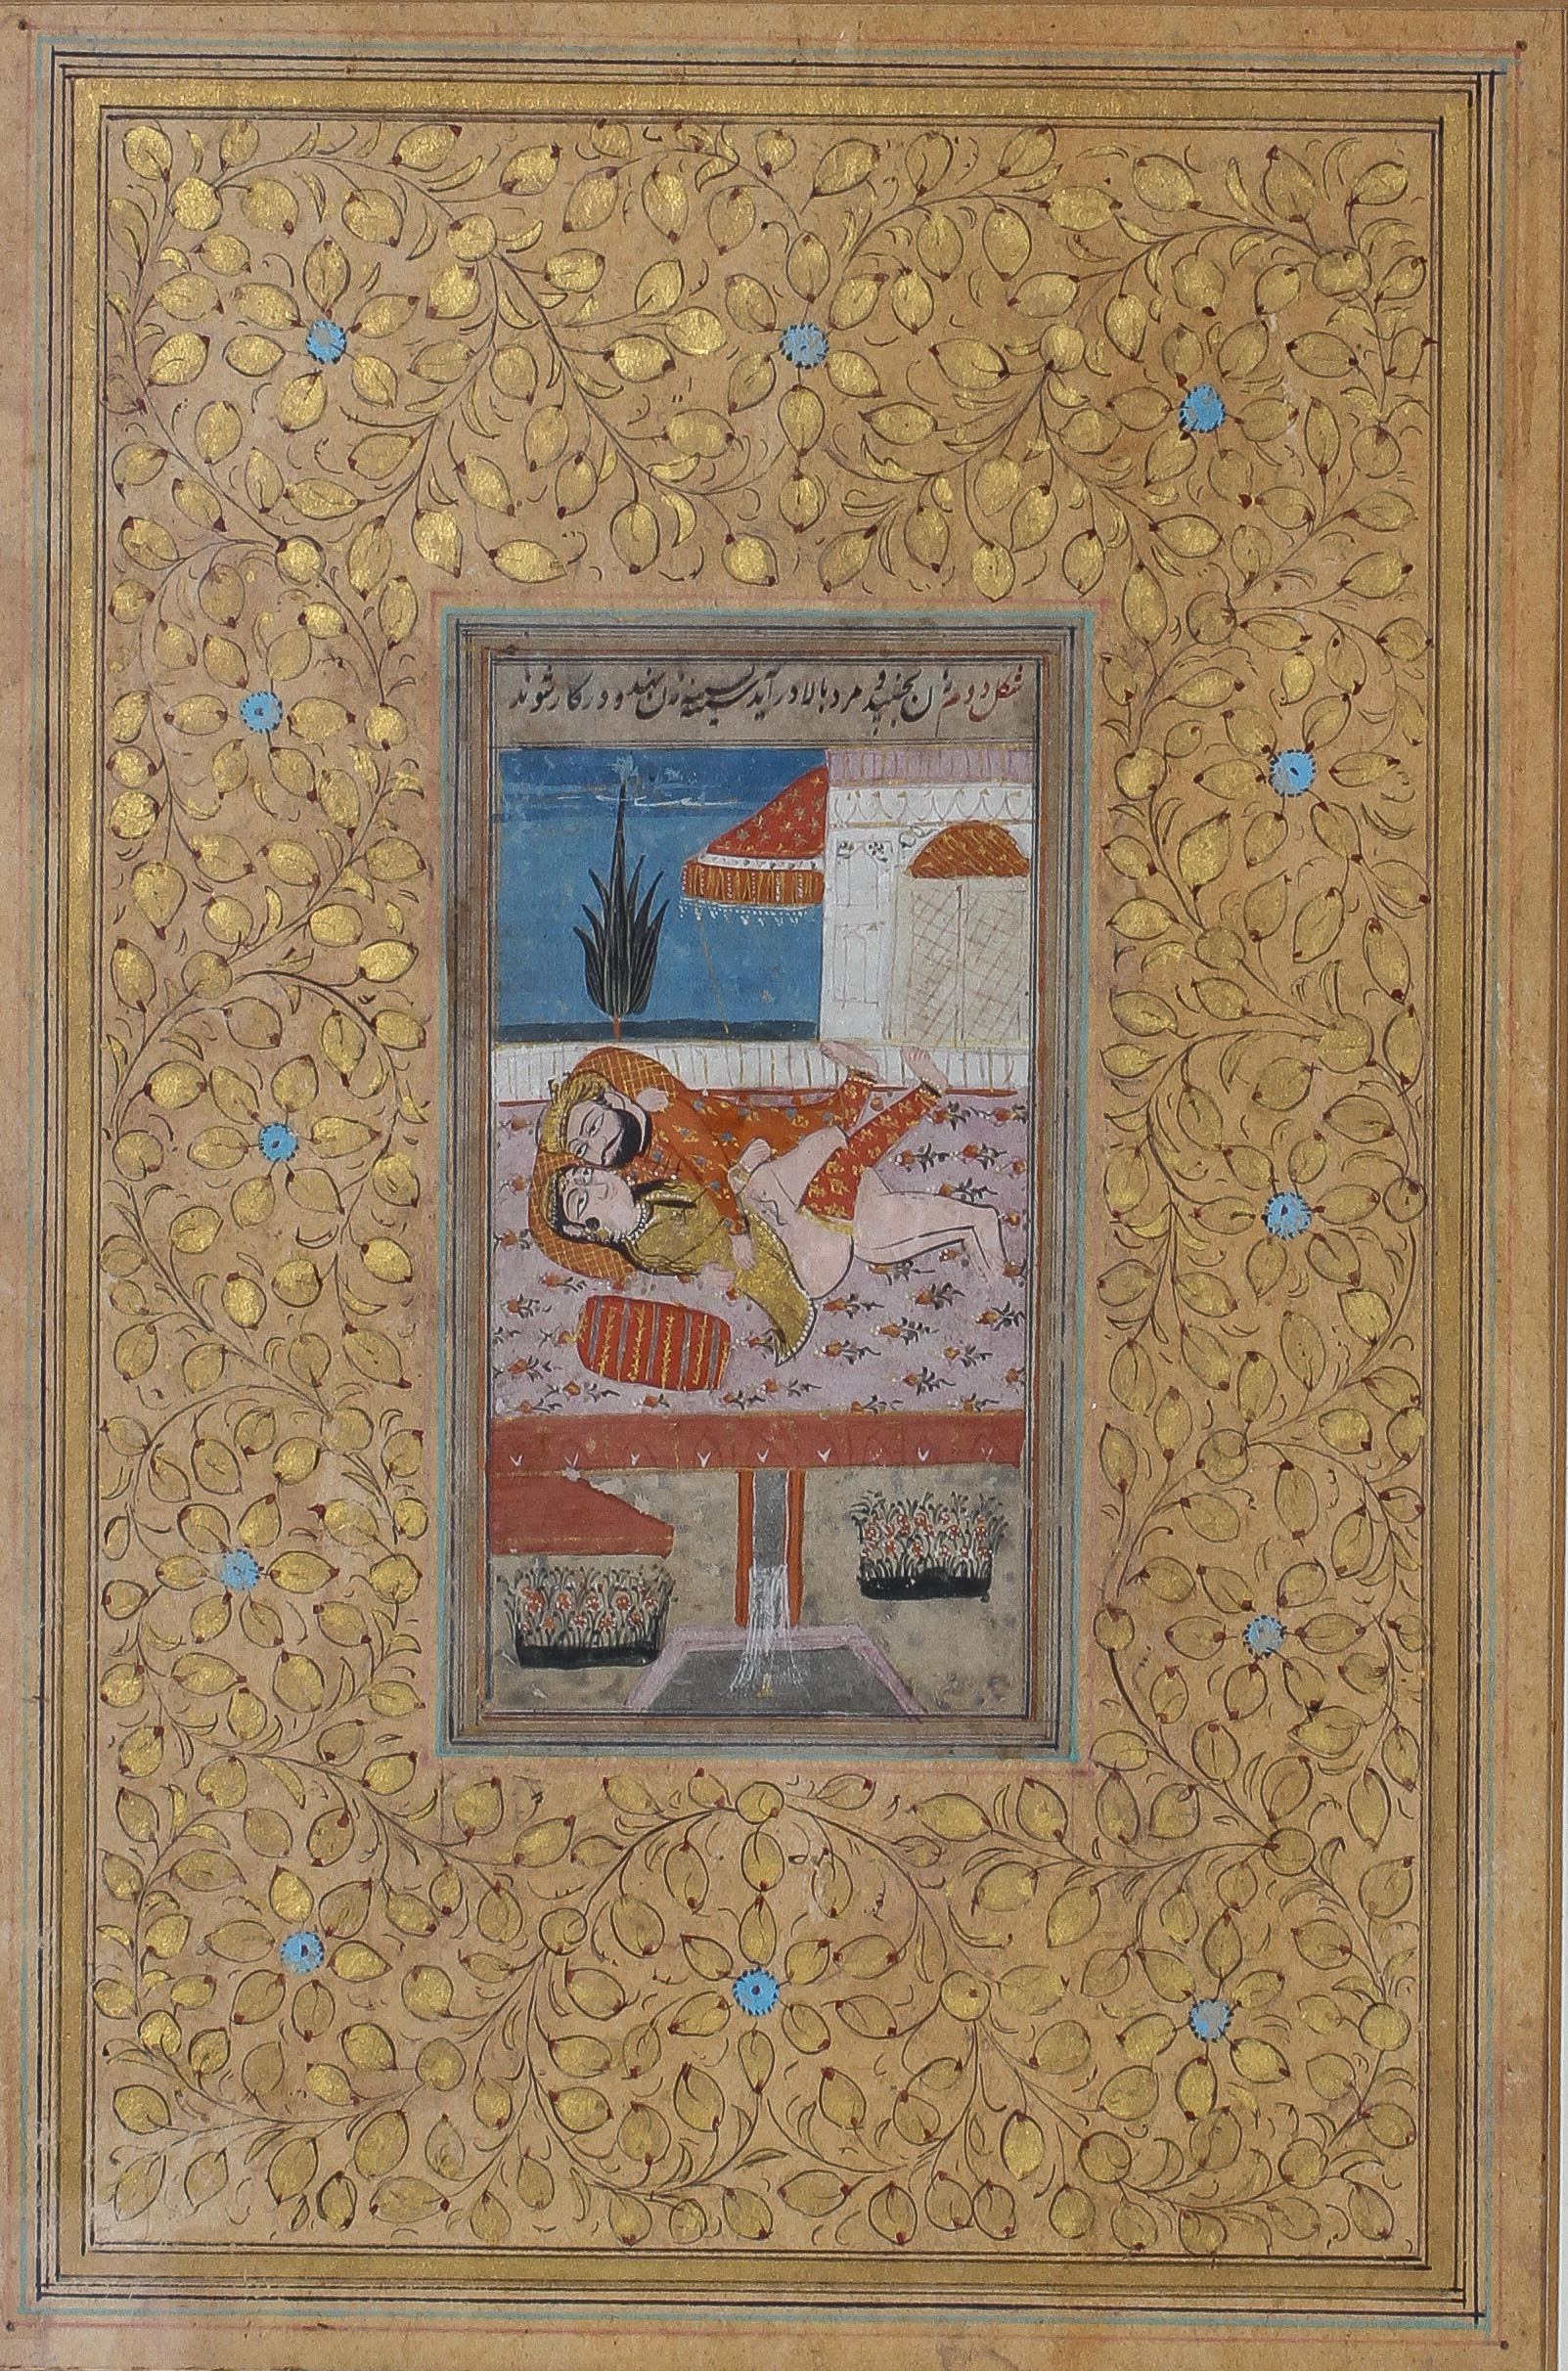 Indian miniatures, a pair of erotic scenes, watercolour and gilding, in one frame, - Image 2 of 4